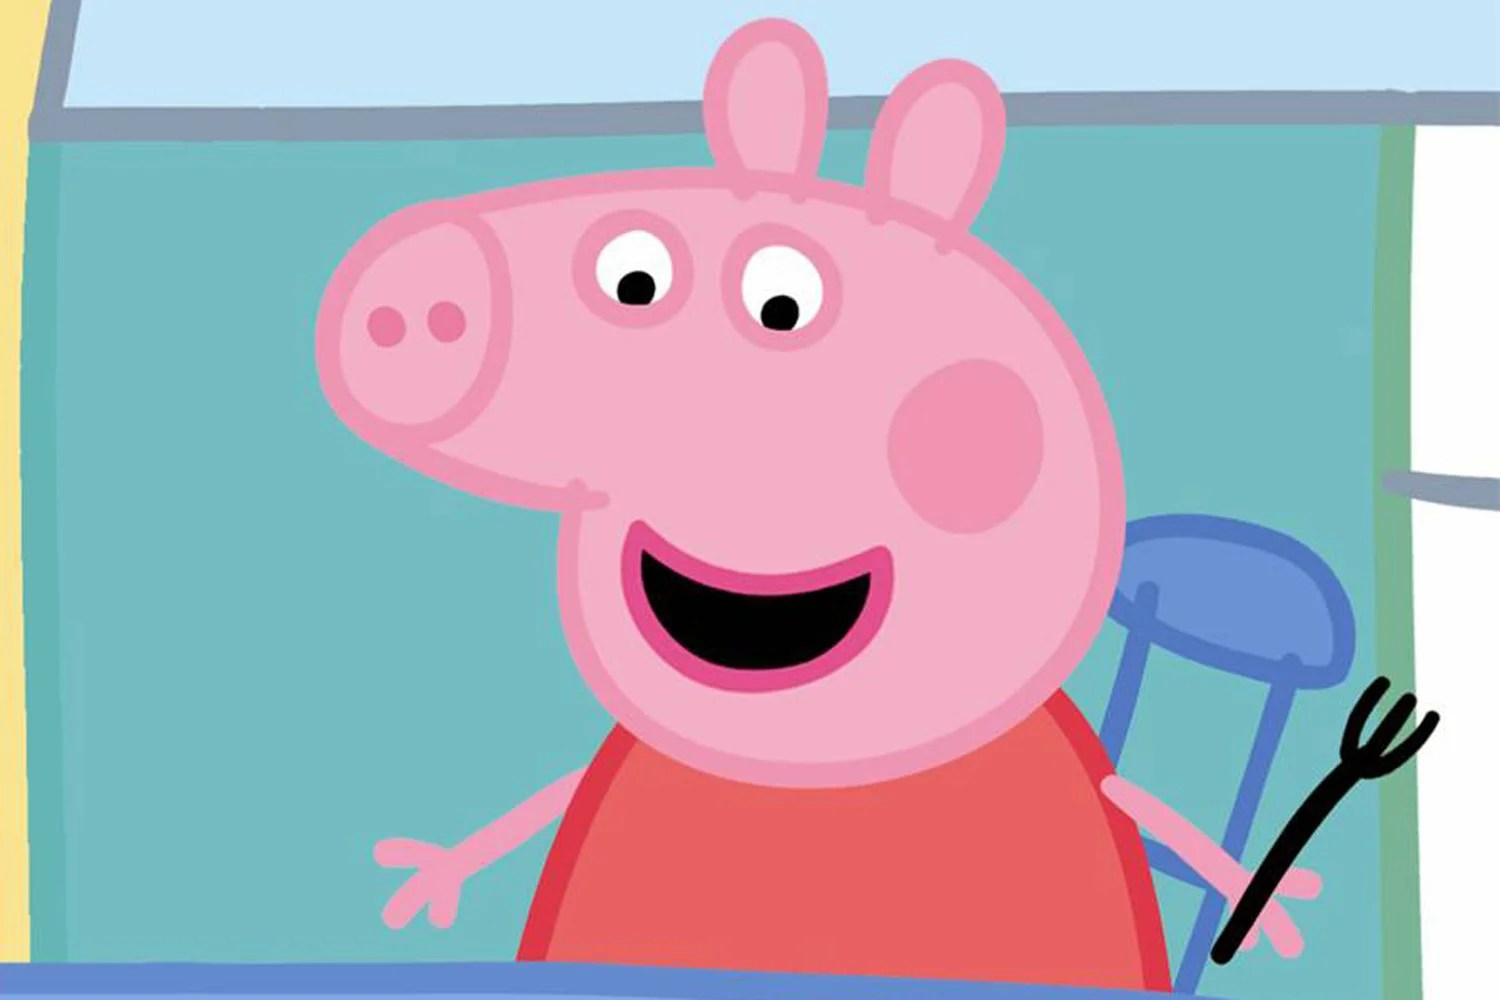 Cuisine Peppa Pig Sketch Of Peppa Pig S Front Face Branded The Stuff Of